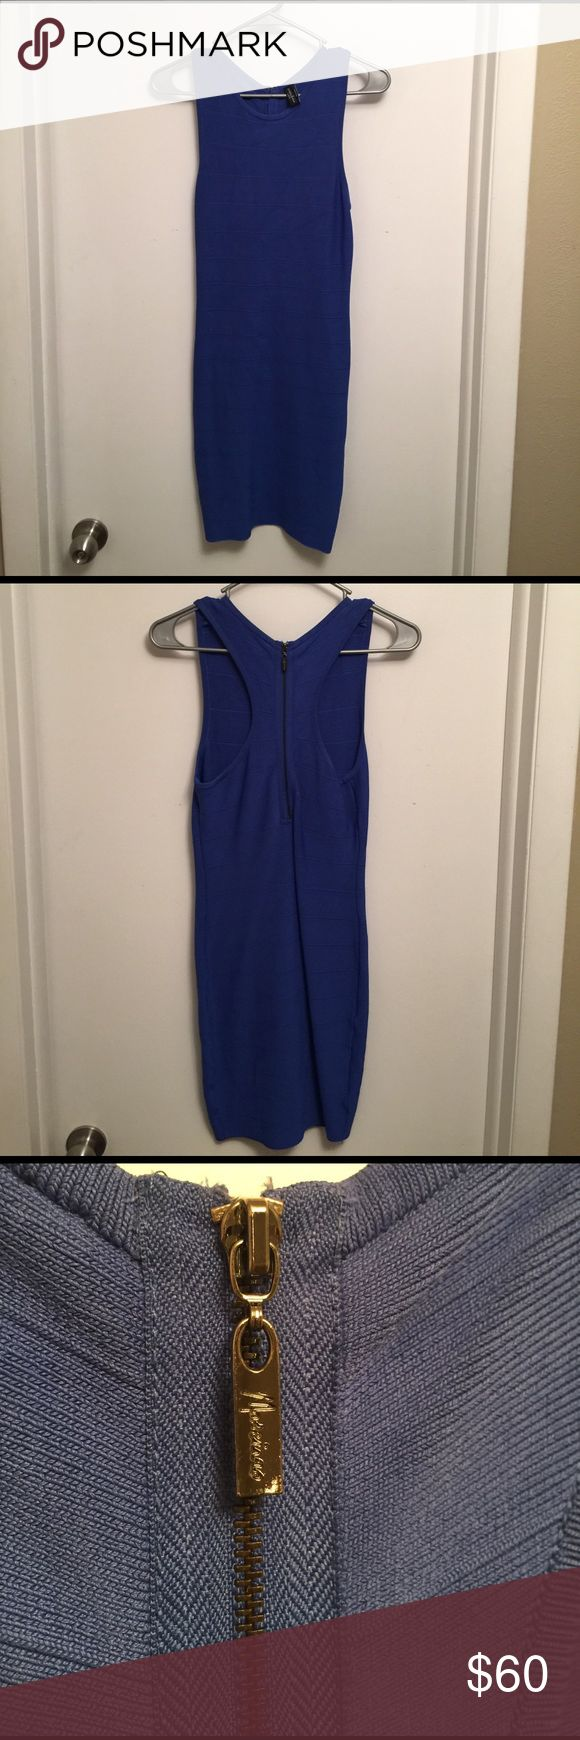 Guess by Marciano Blue bondage dress Blue Guess by Marciano bondage dress worn once. Guess by Marciano Dresses Mini